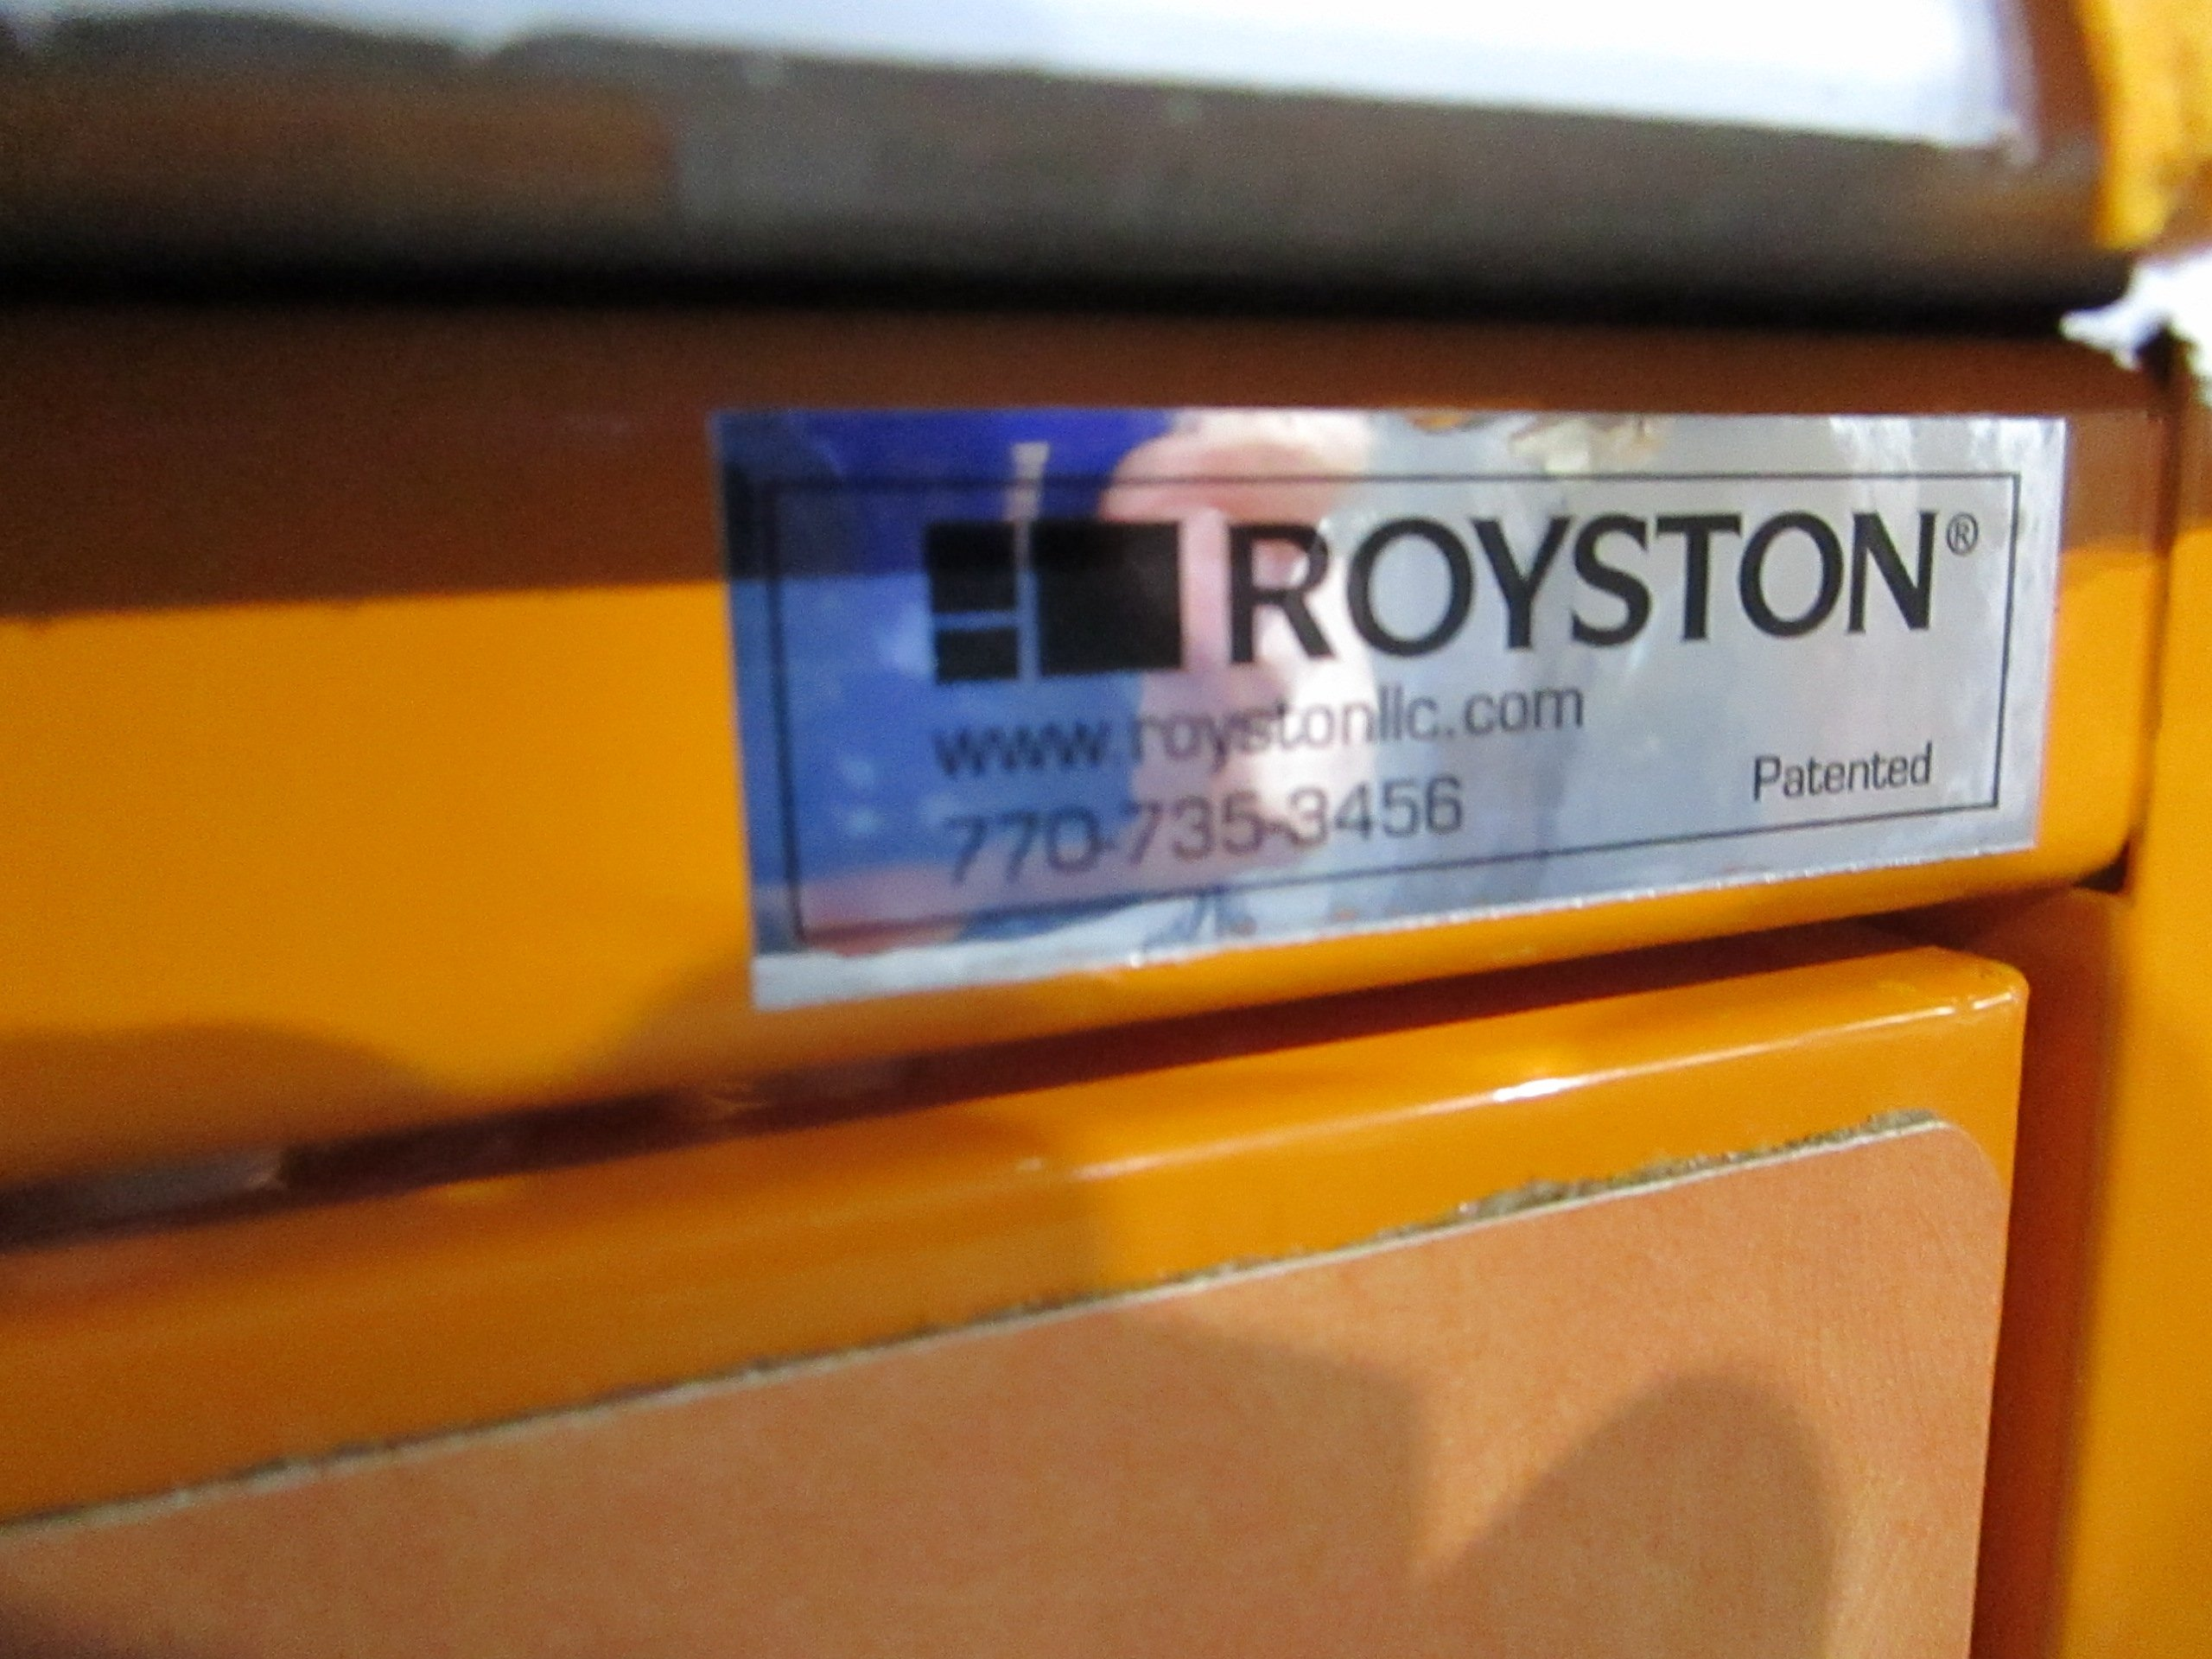 ROYSTON 60045116-226 COFFEE BEVERAGE COUNTER 4 CUP DISPENSER 2 DRAWER CABINET